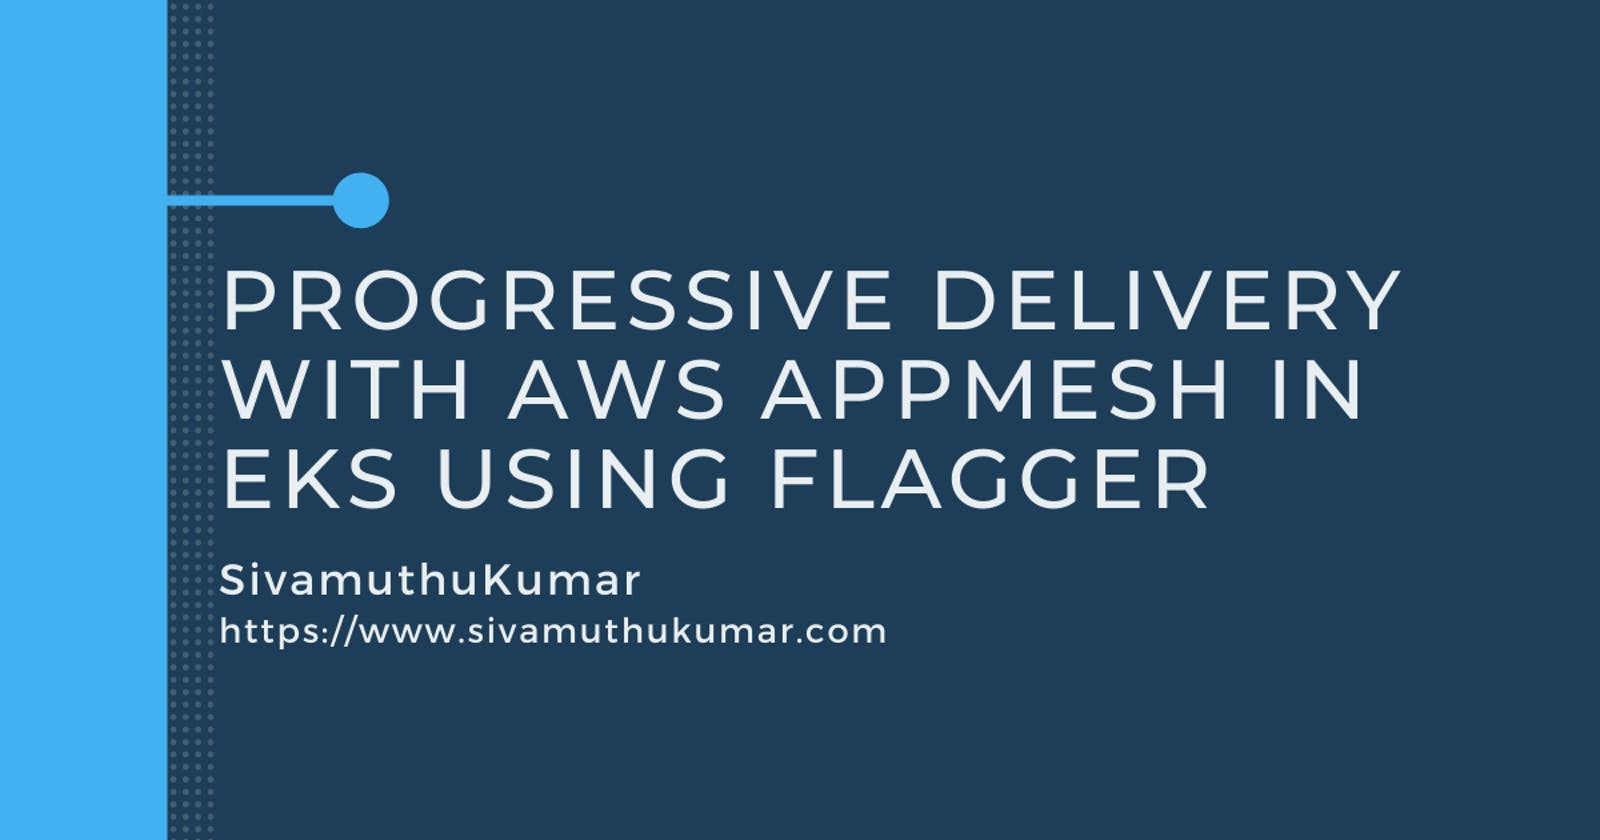 Progressive Delivery with AWS AppMesh in EKS using Flagger